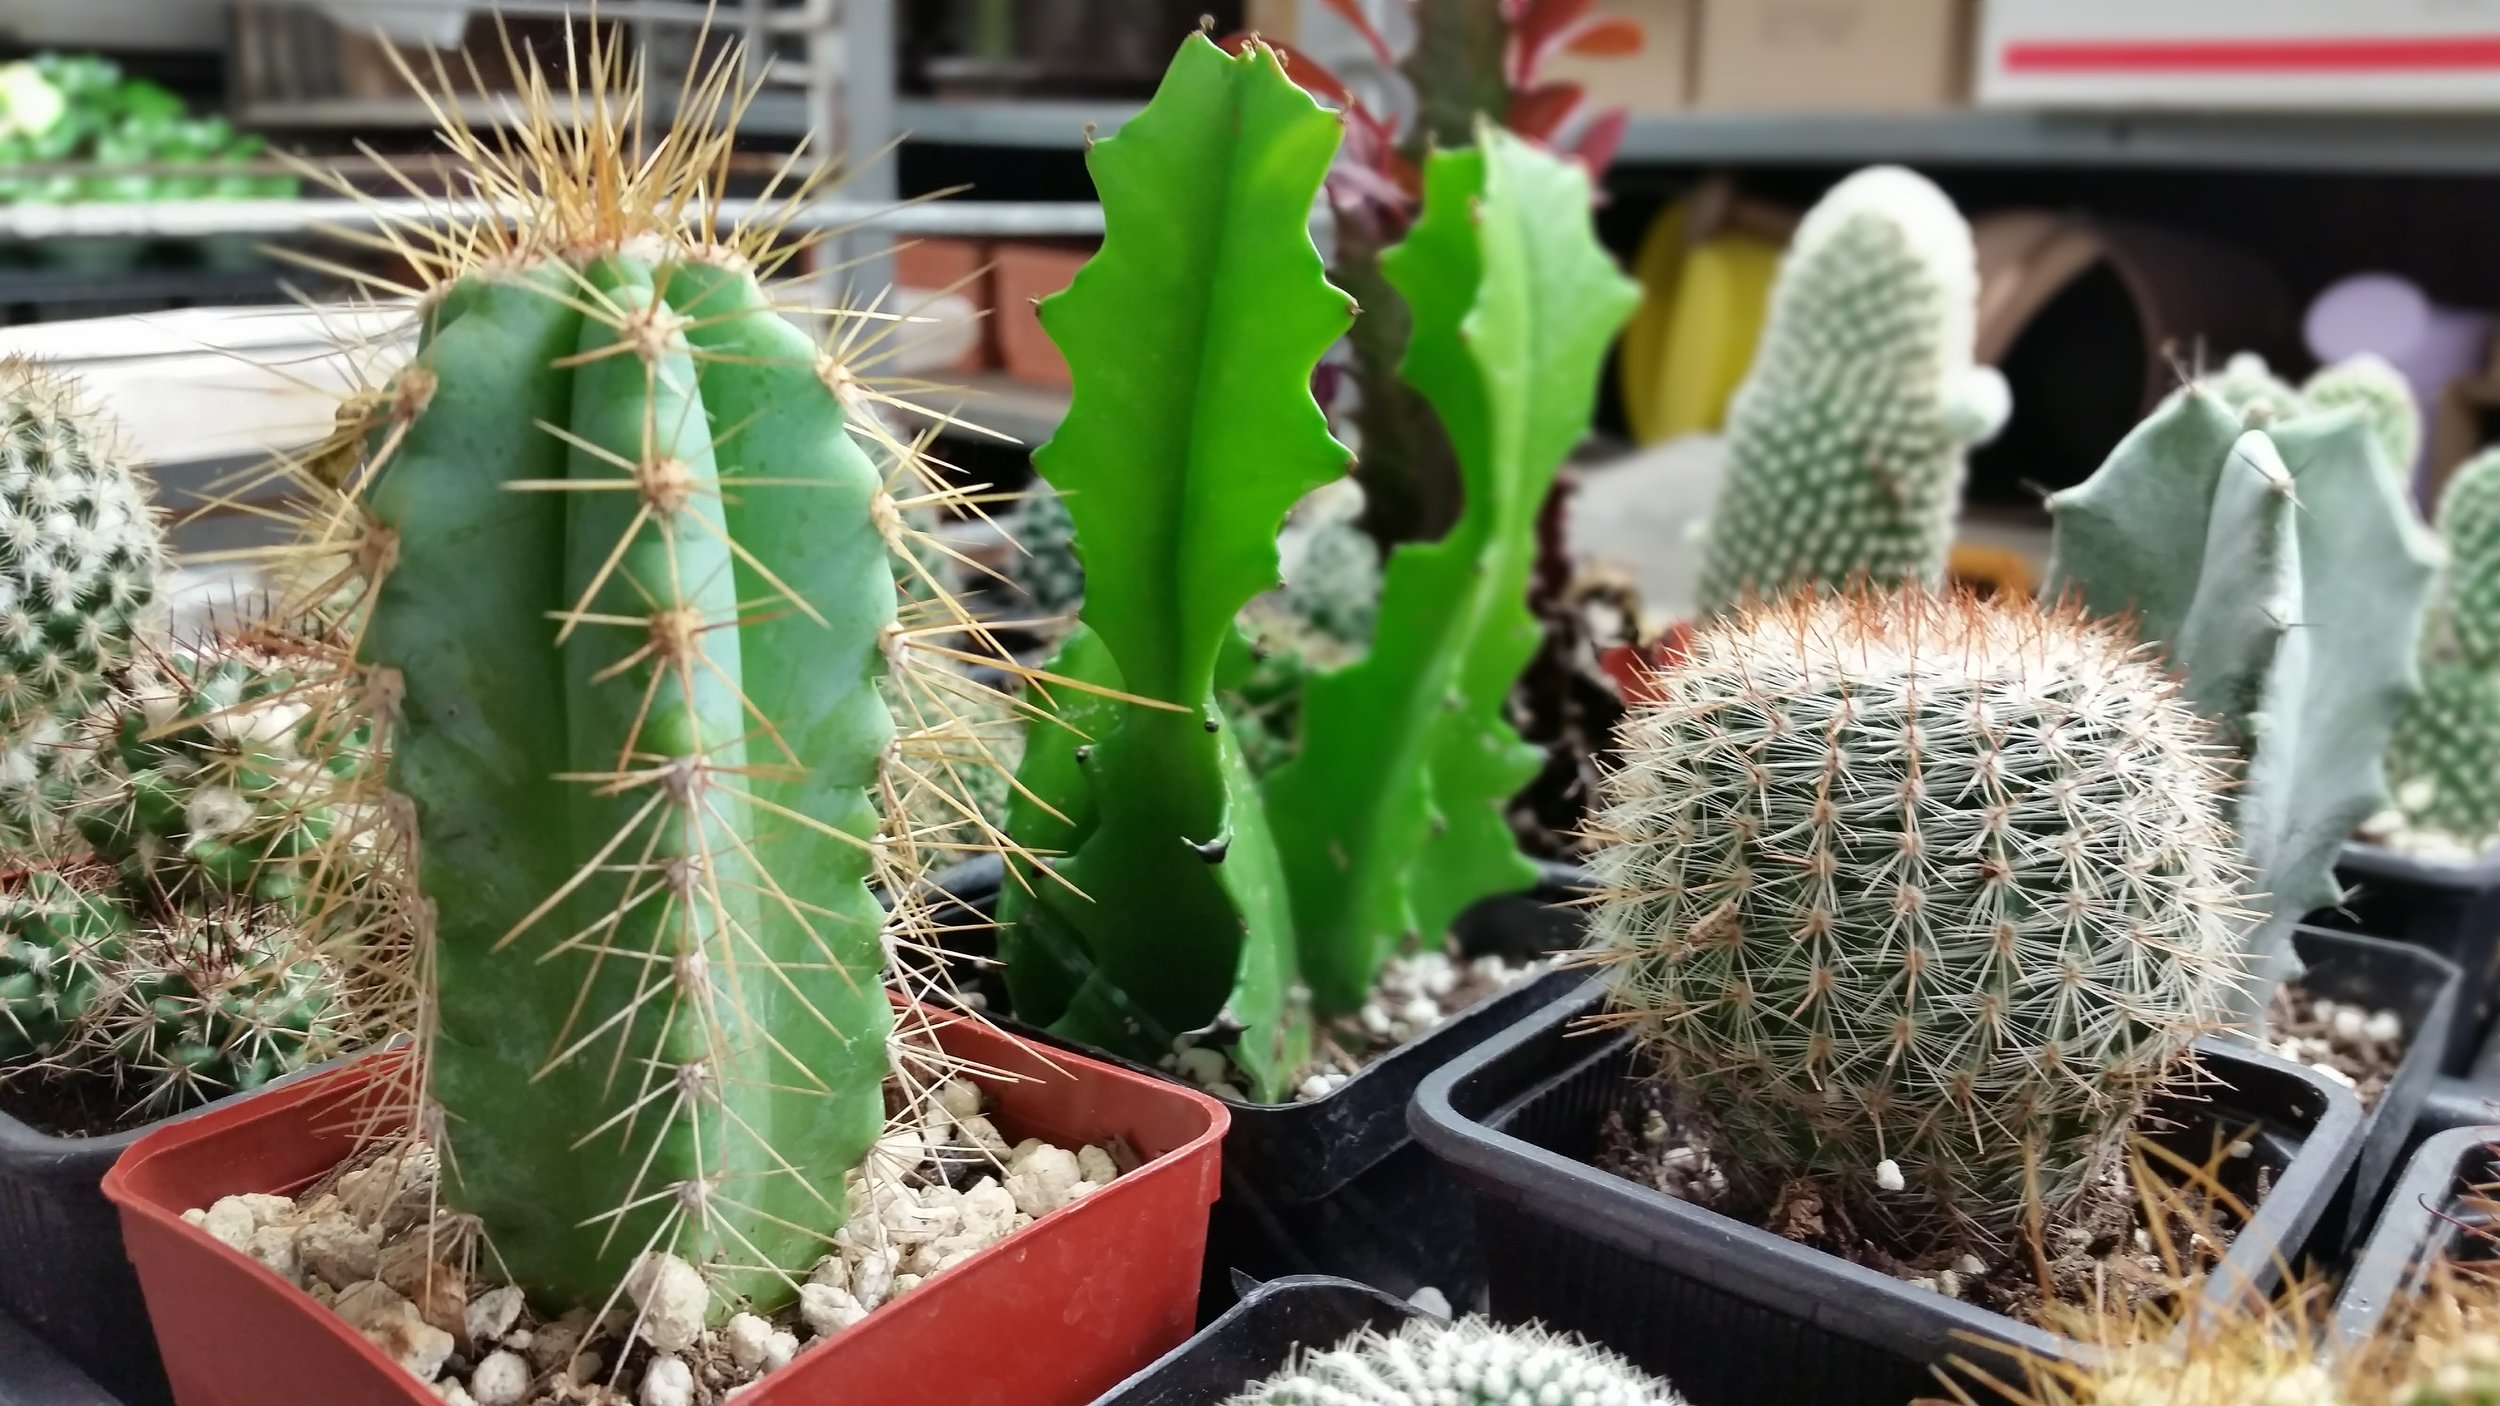 Assorted Cacti Photo Credits: Published to Web